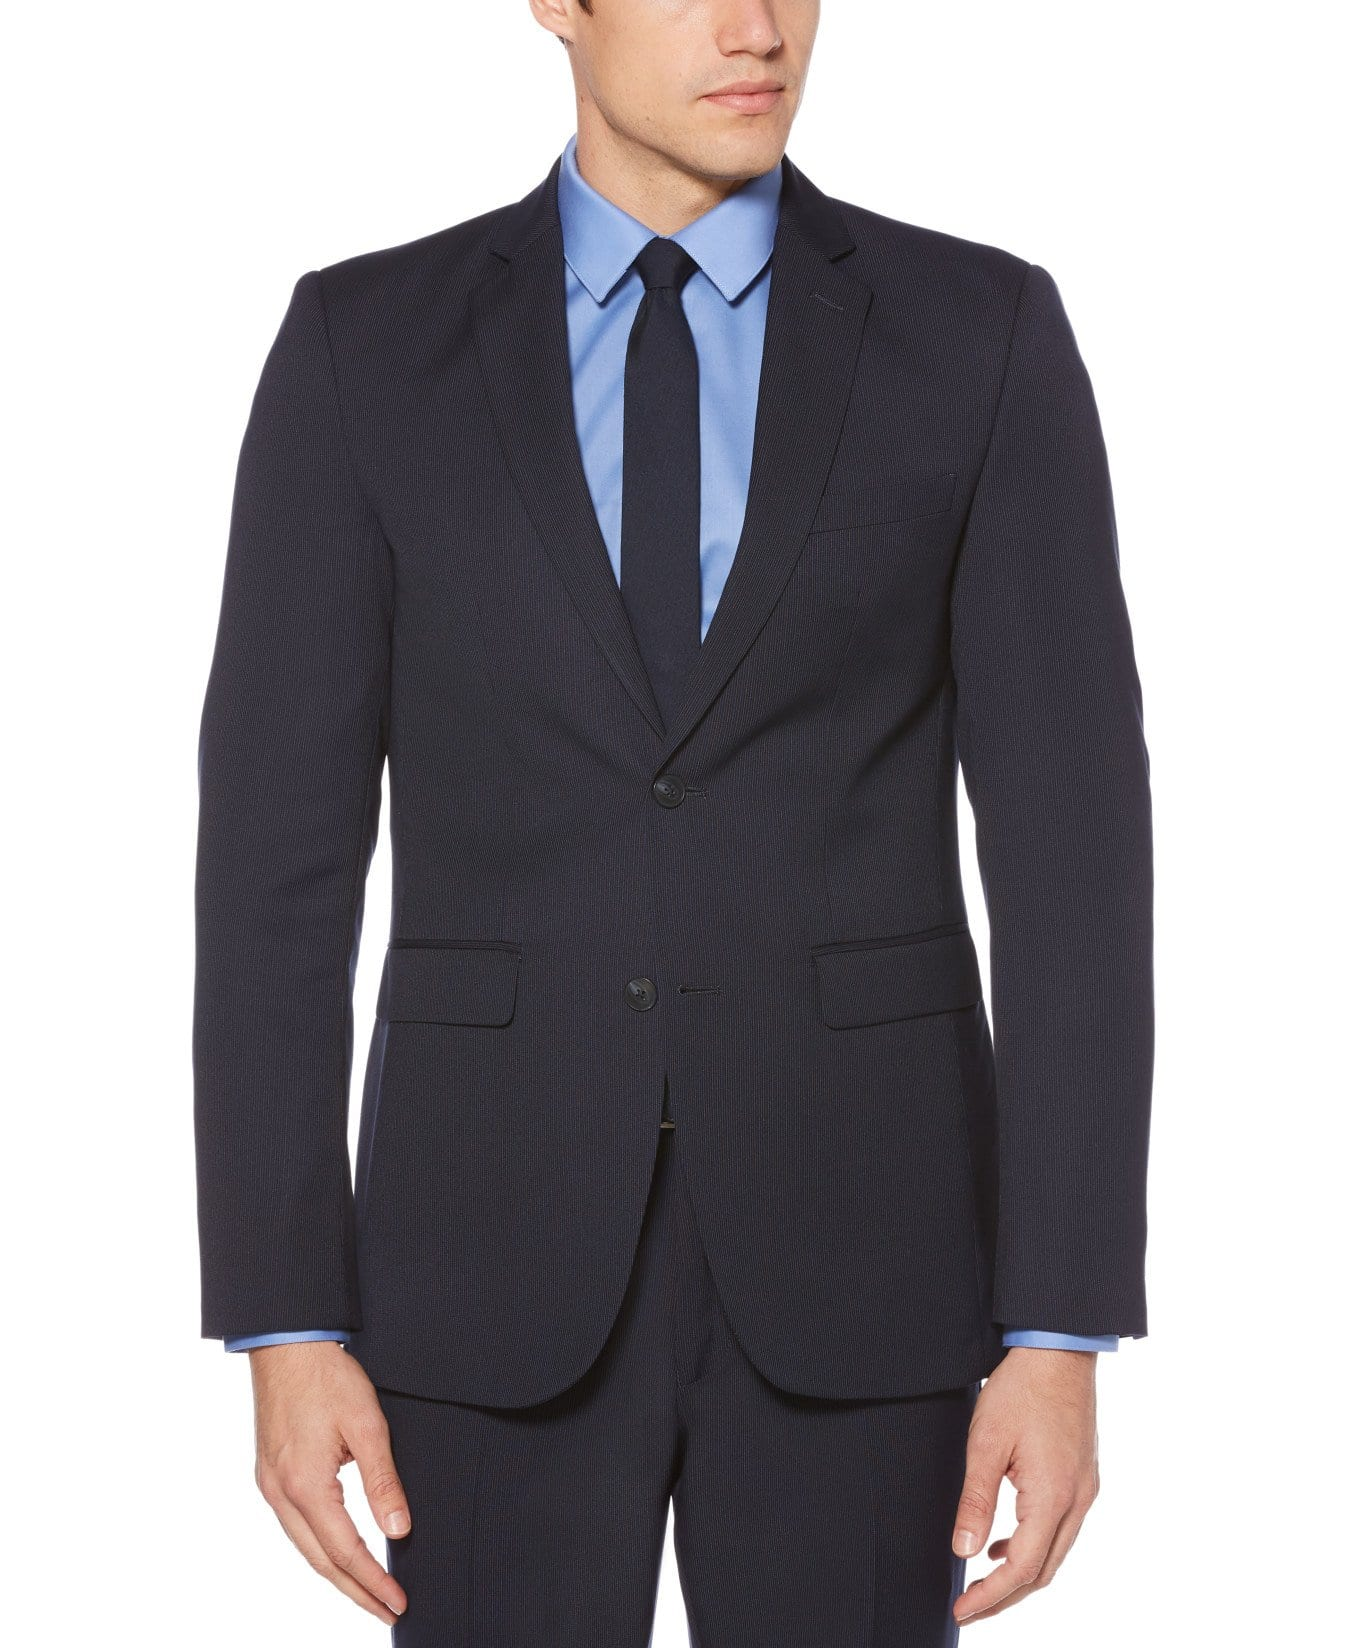 Perry Ellis: 40% Off Sitewide - Suits from $78 & More - Free Shipping